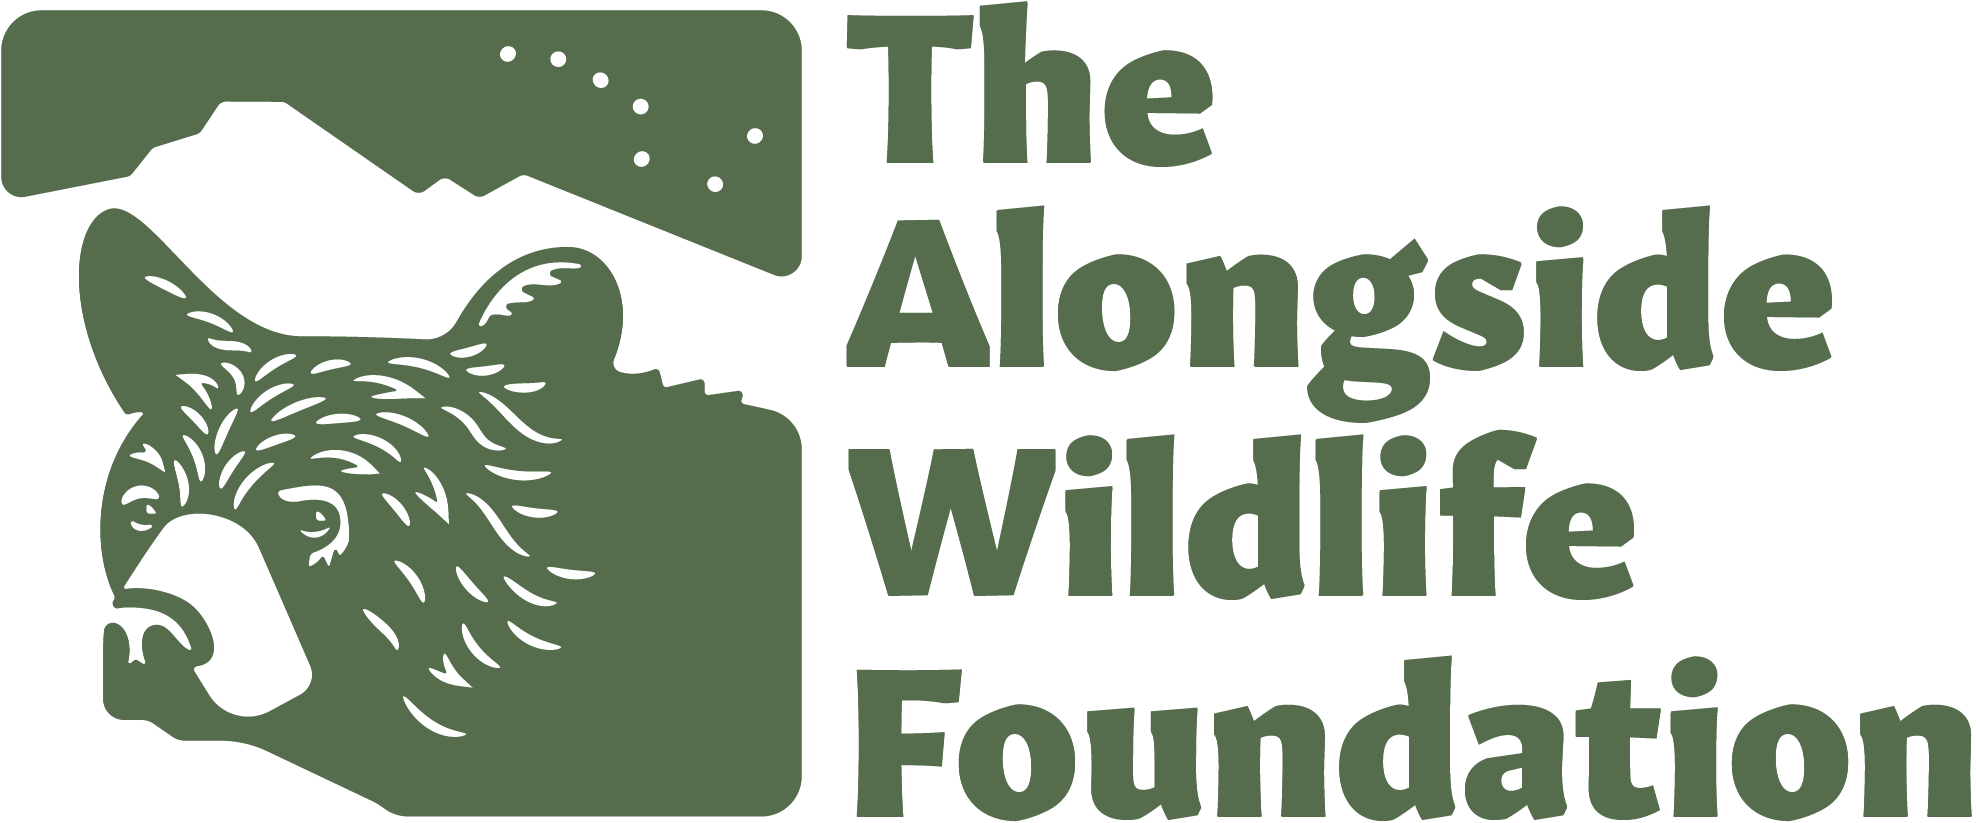 The Alongside Wildlife Foundation logotype, featuring a black bear in profile. Green artwork beside green text.